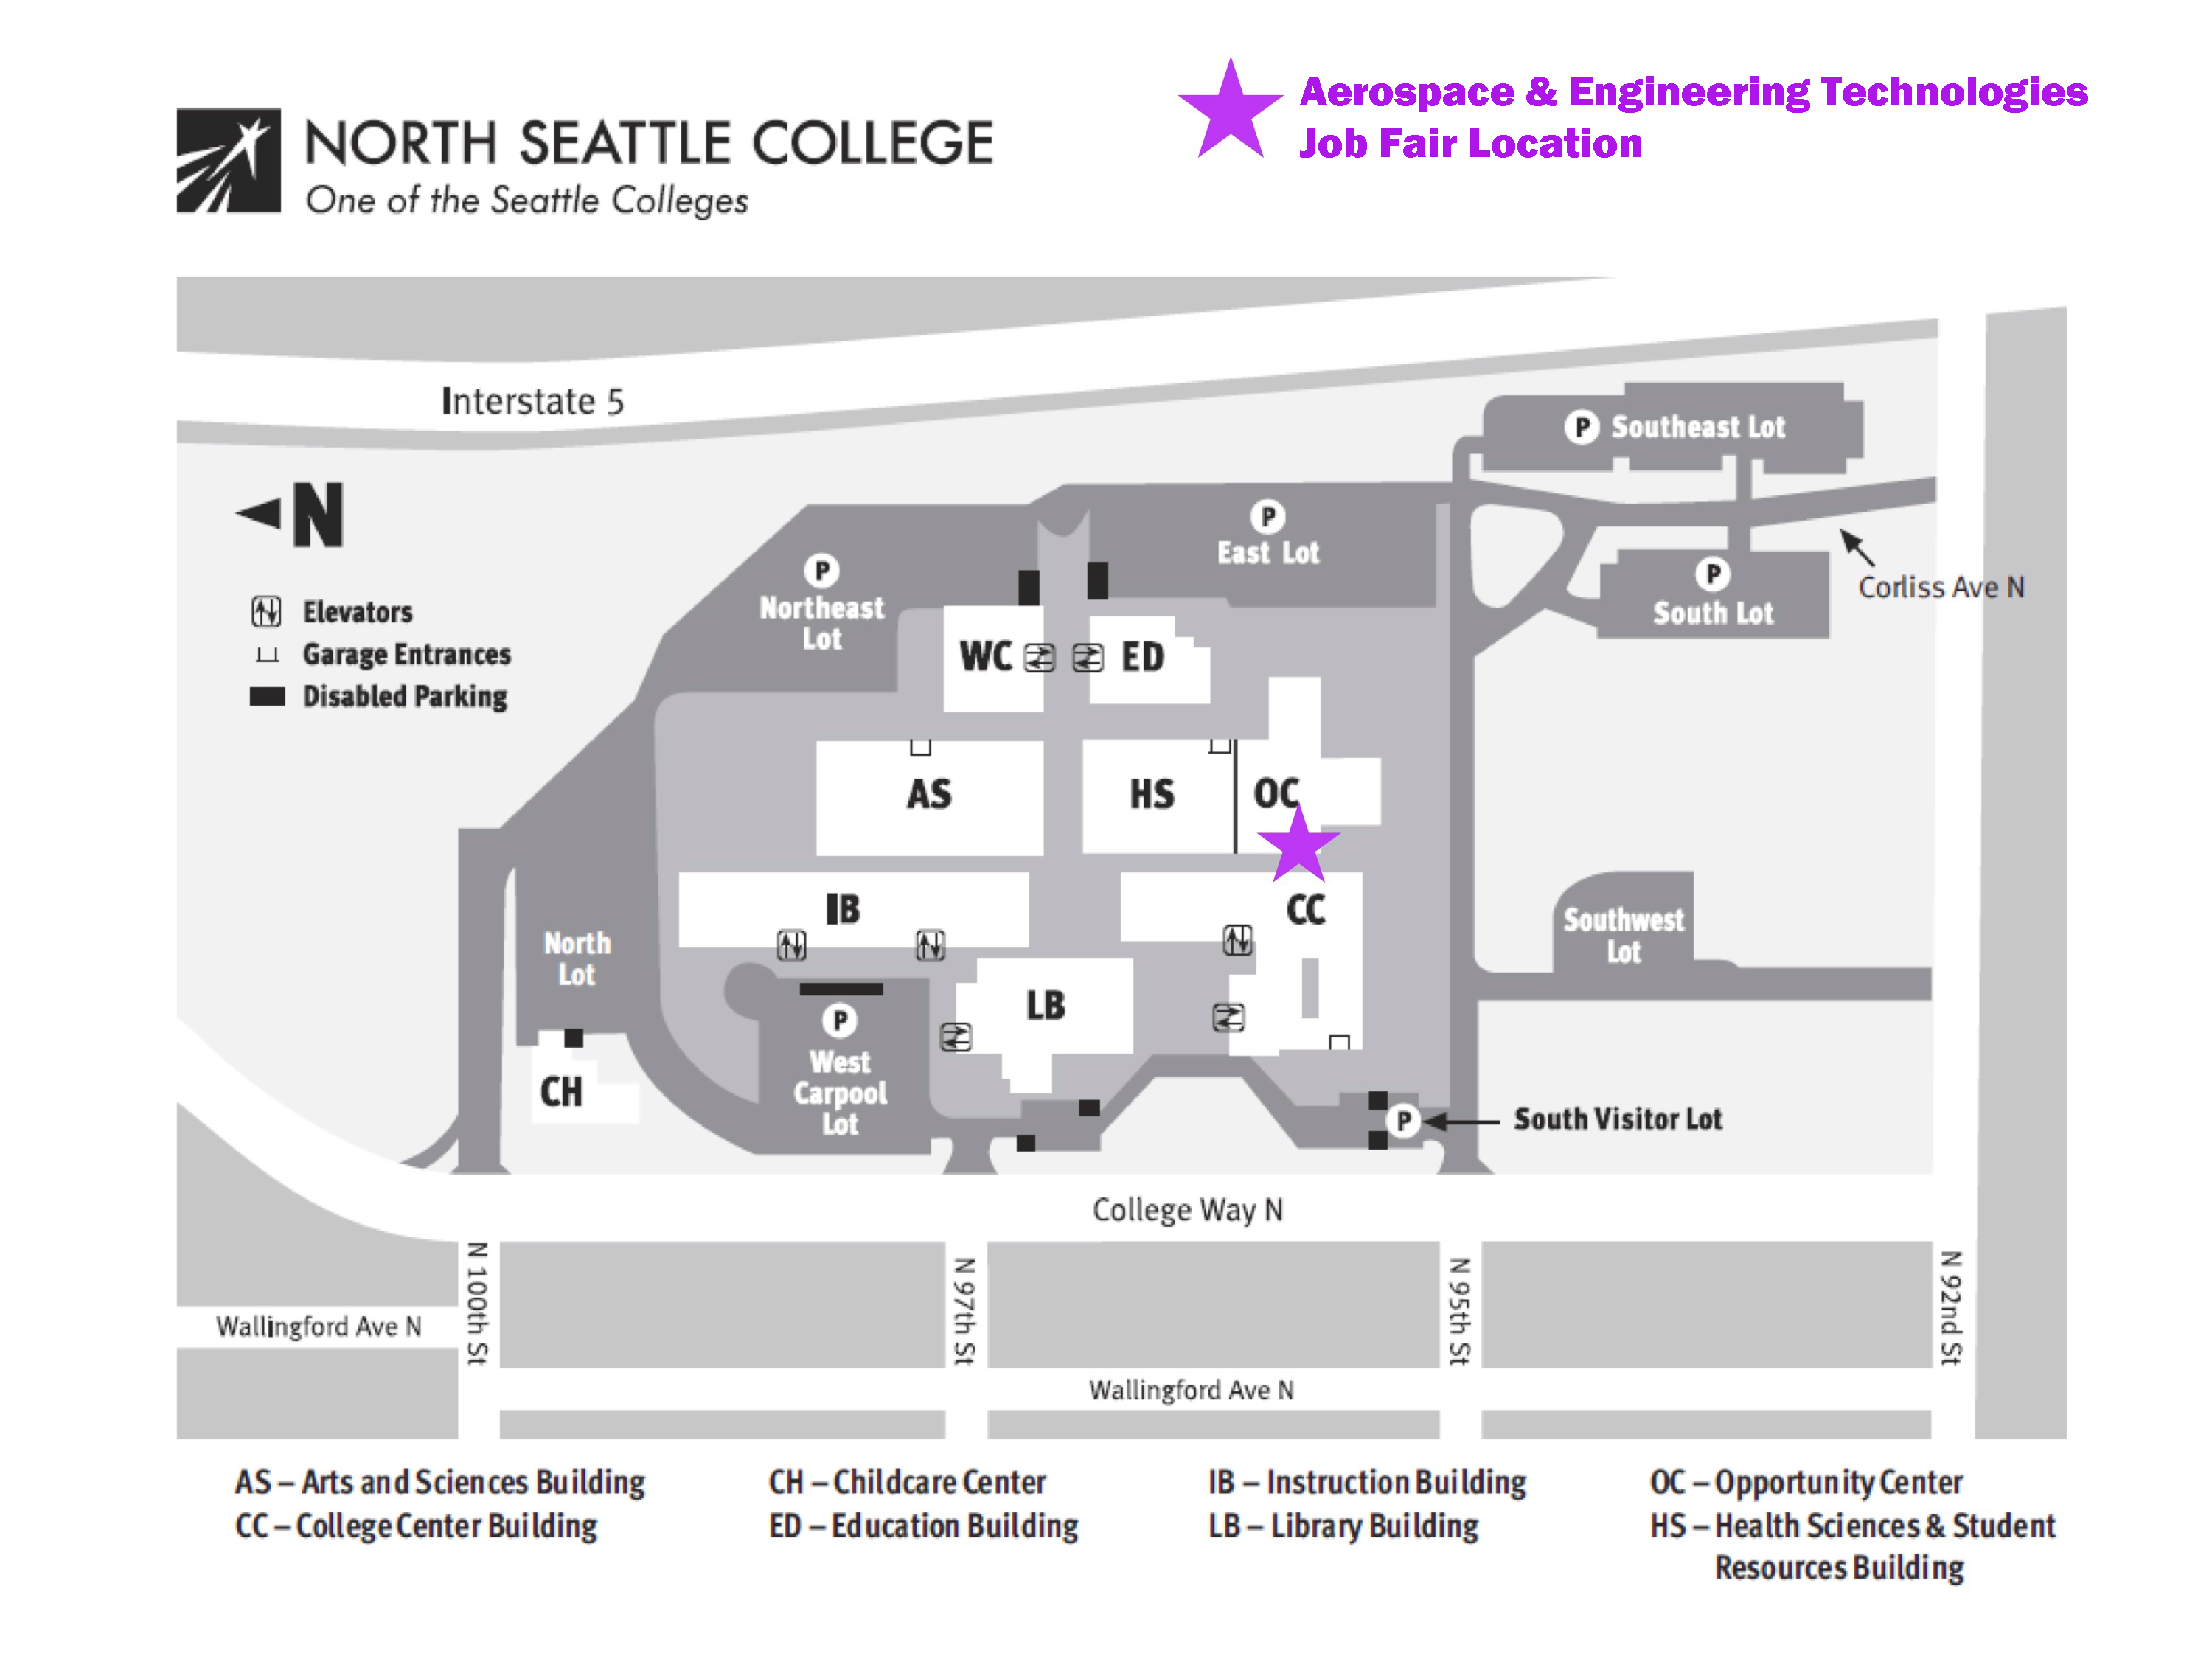 Campus Map of North Seattle College with Job Fair location marked with a star